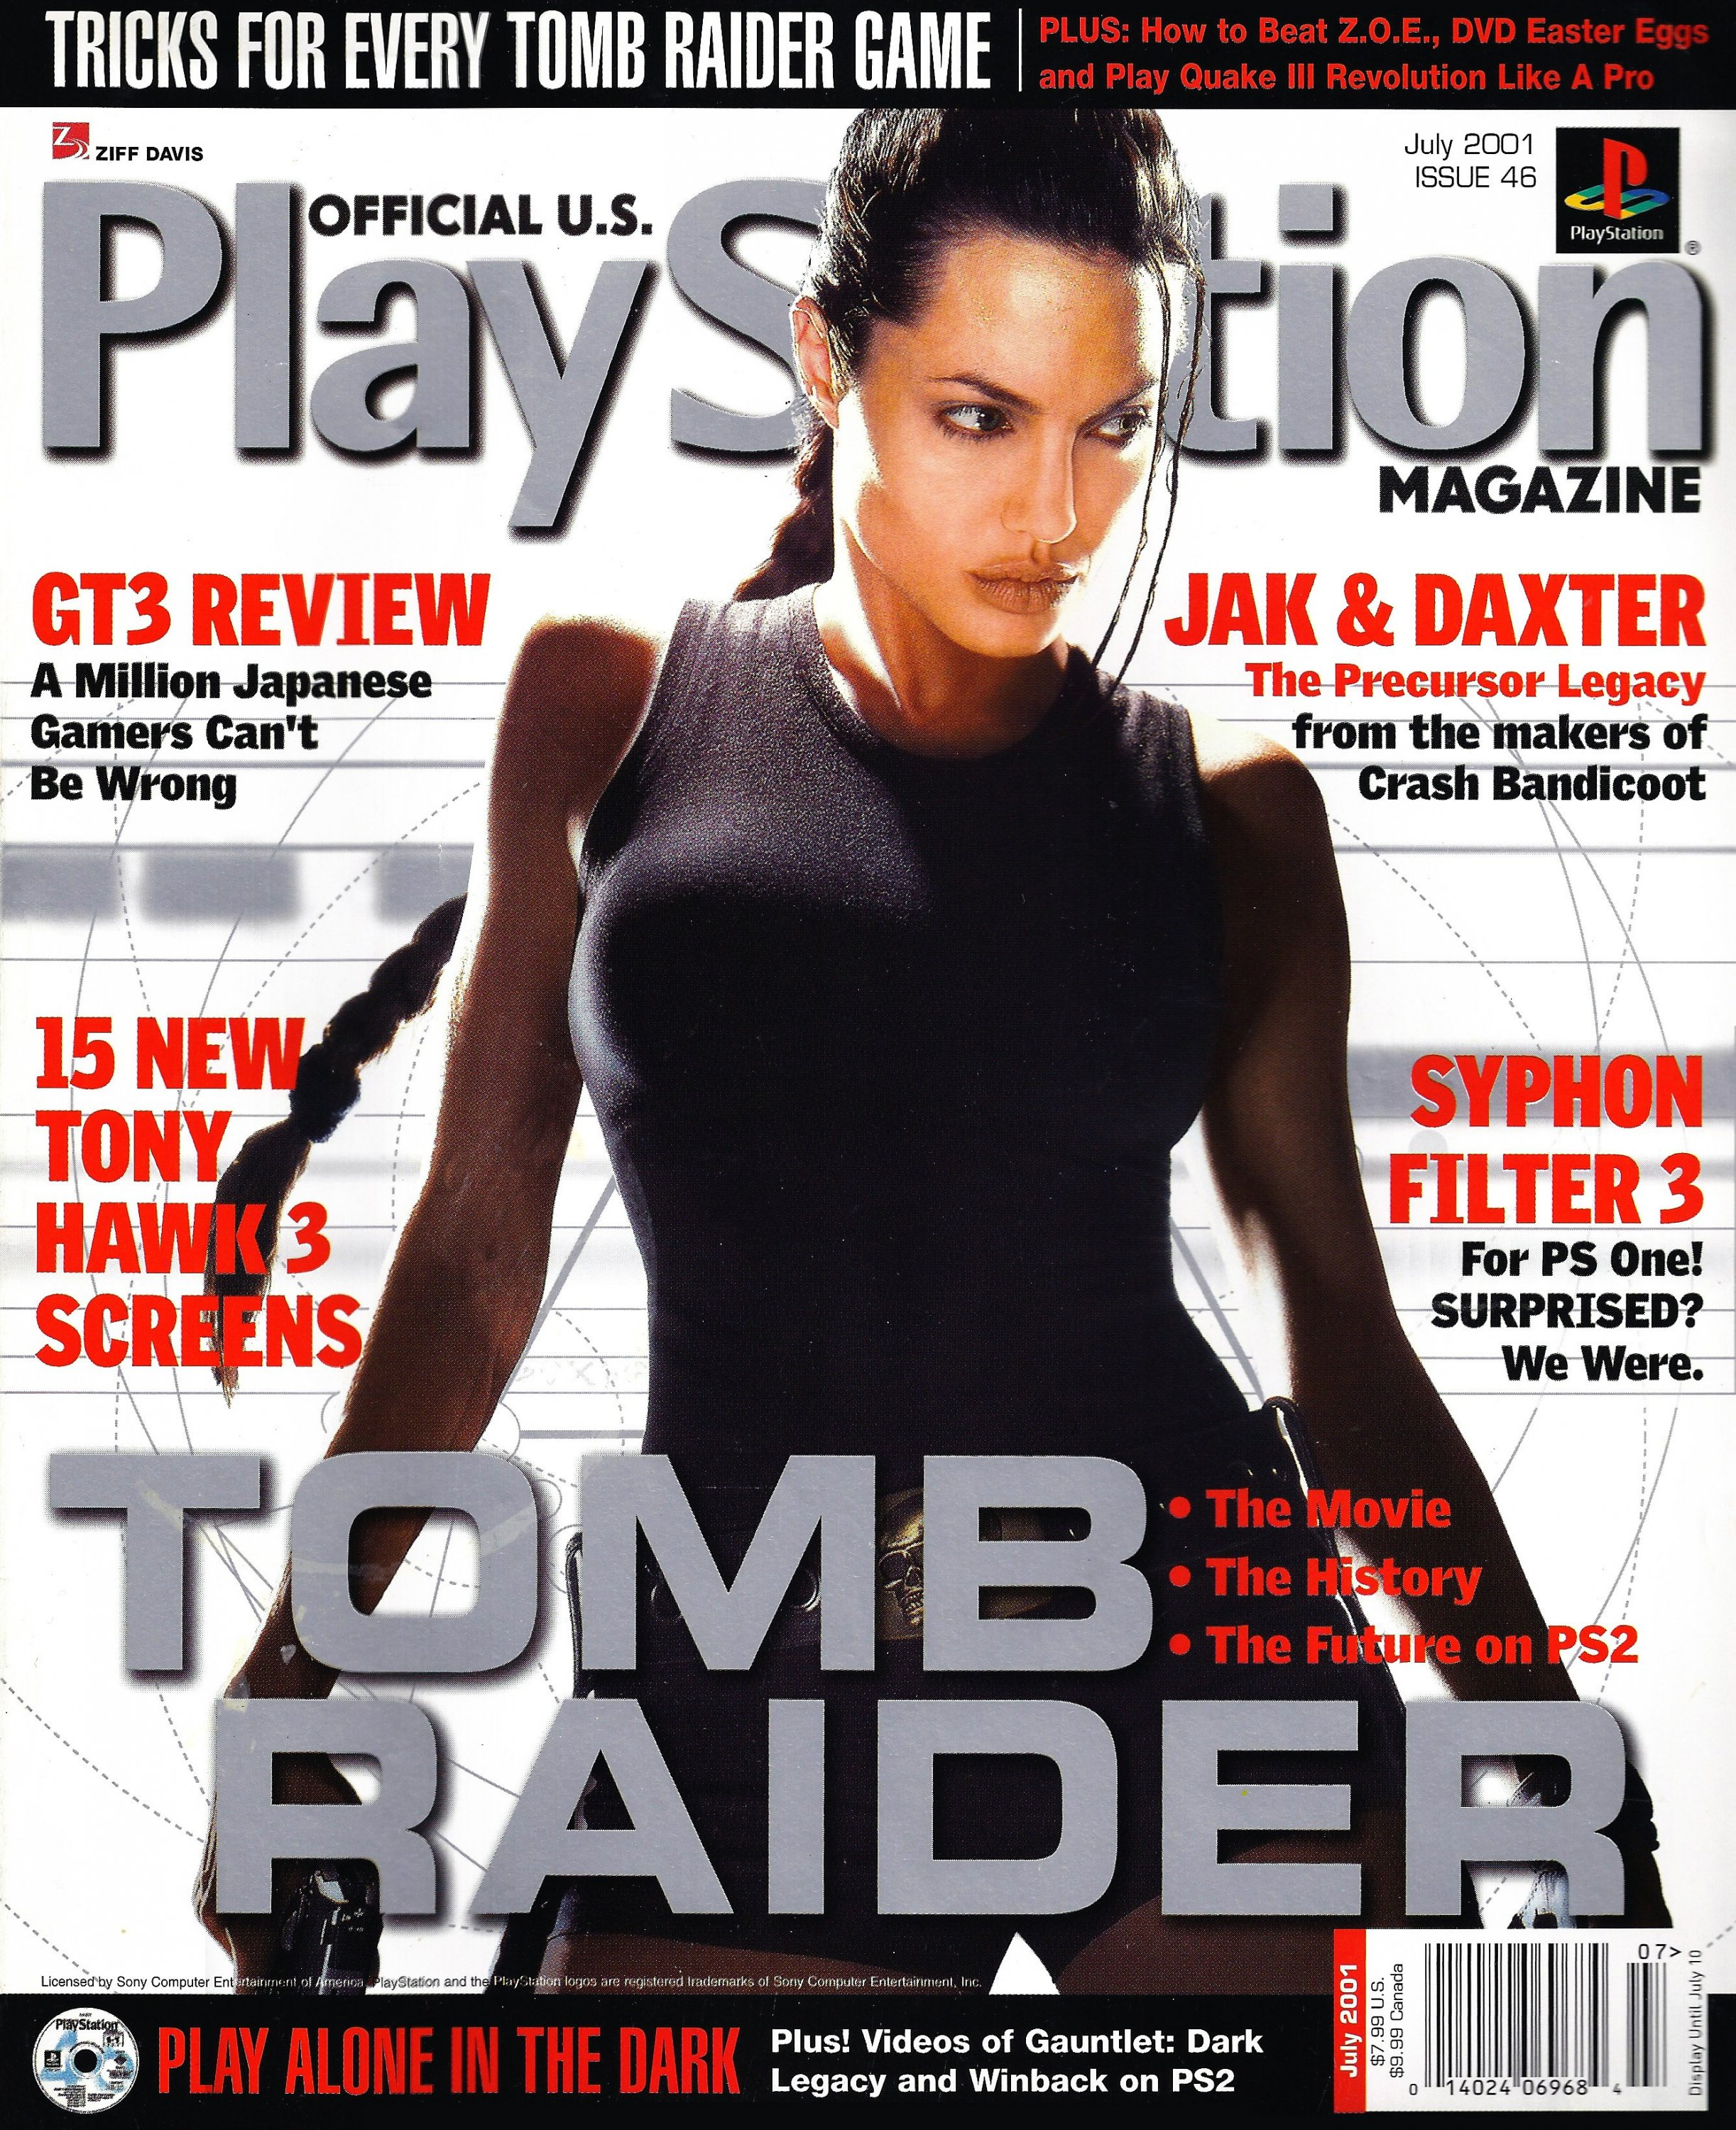 Official U.S. PlayStation Magazine Issue 046 (July 2001)